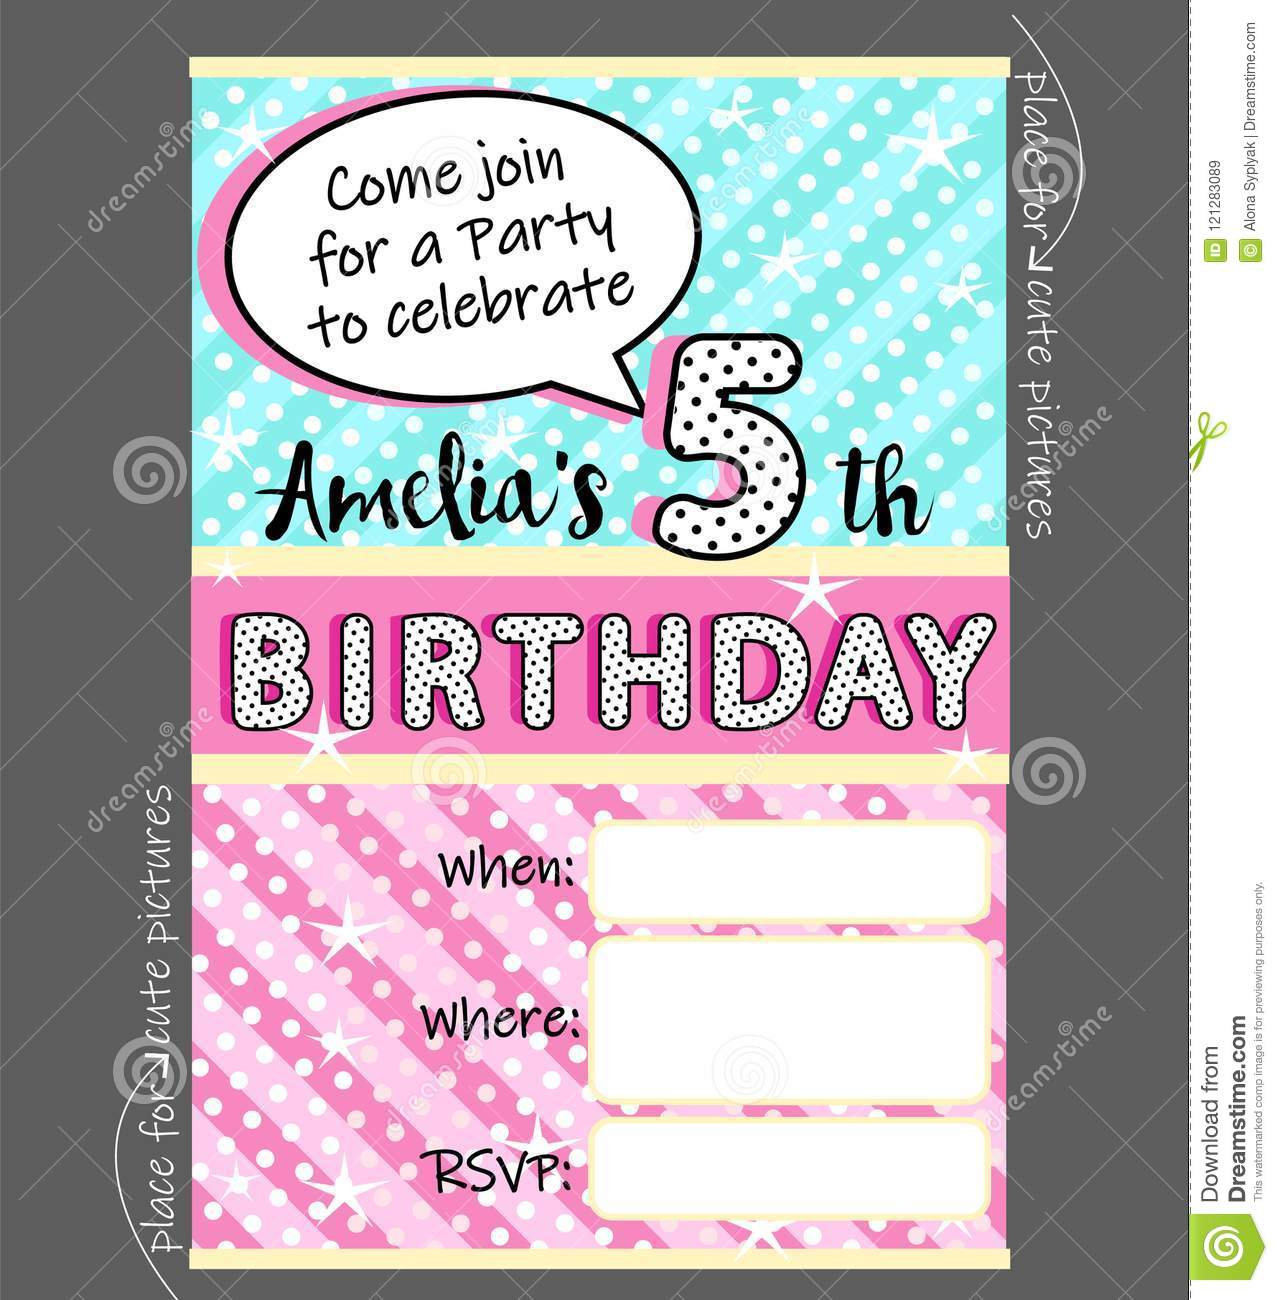 Vector Invitation Template For Girly Party Cute Invite Card For Birthday Baby Shower For Girl Stock Vector Illustration Of Pink Template 121283089